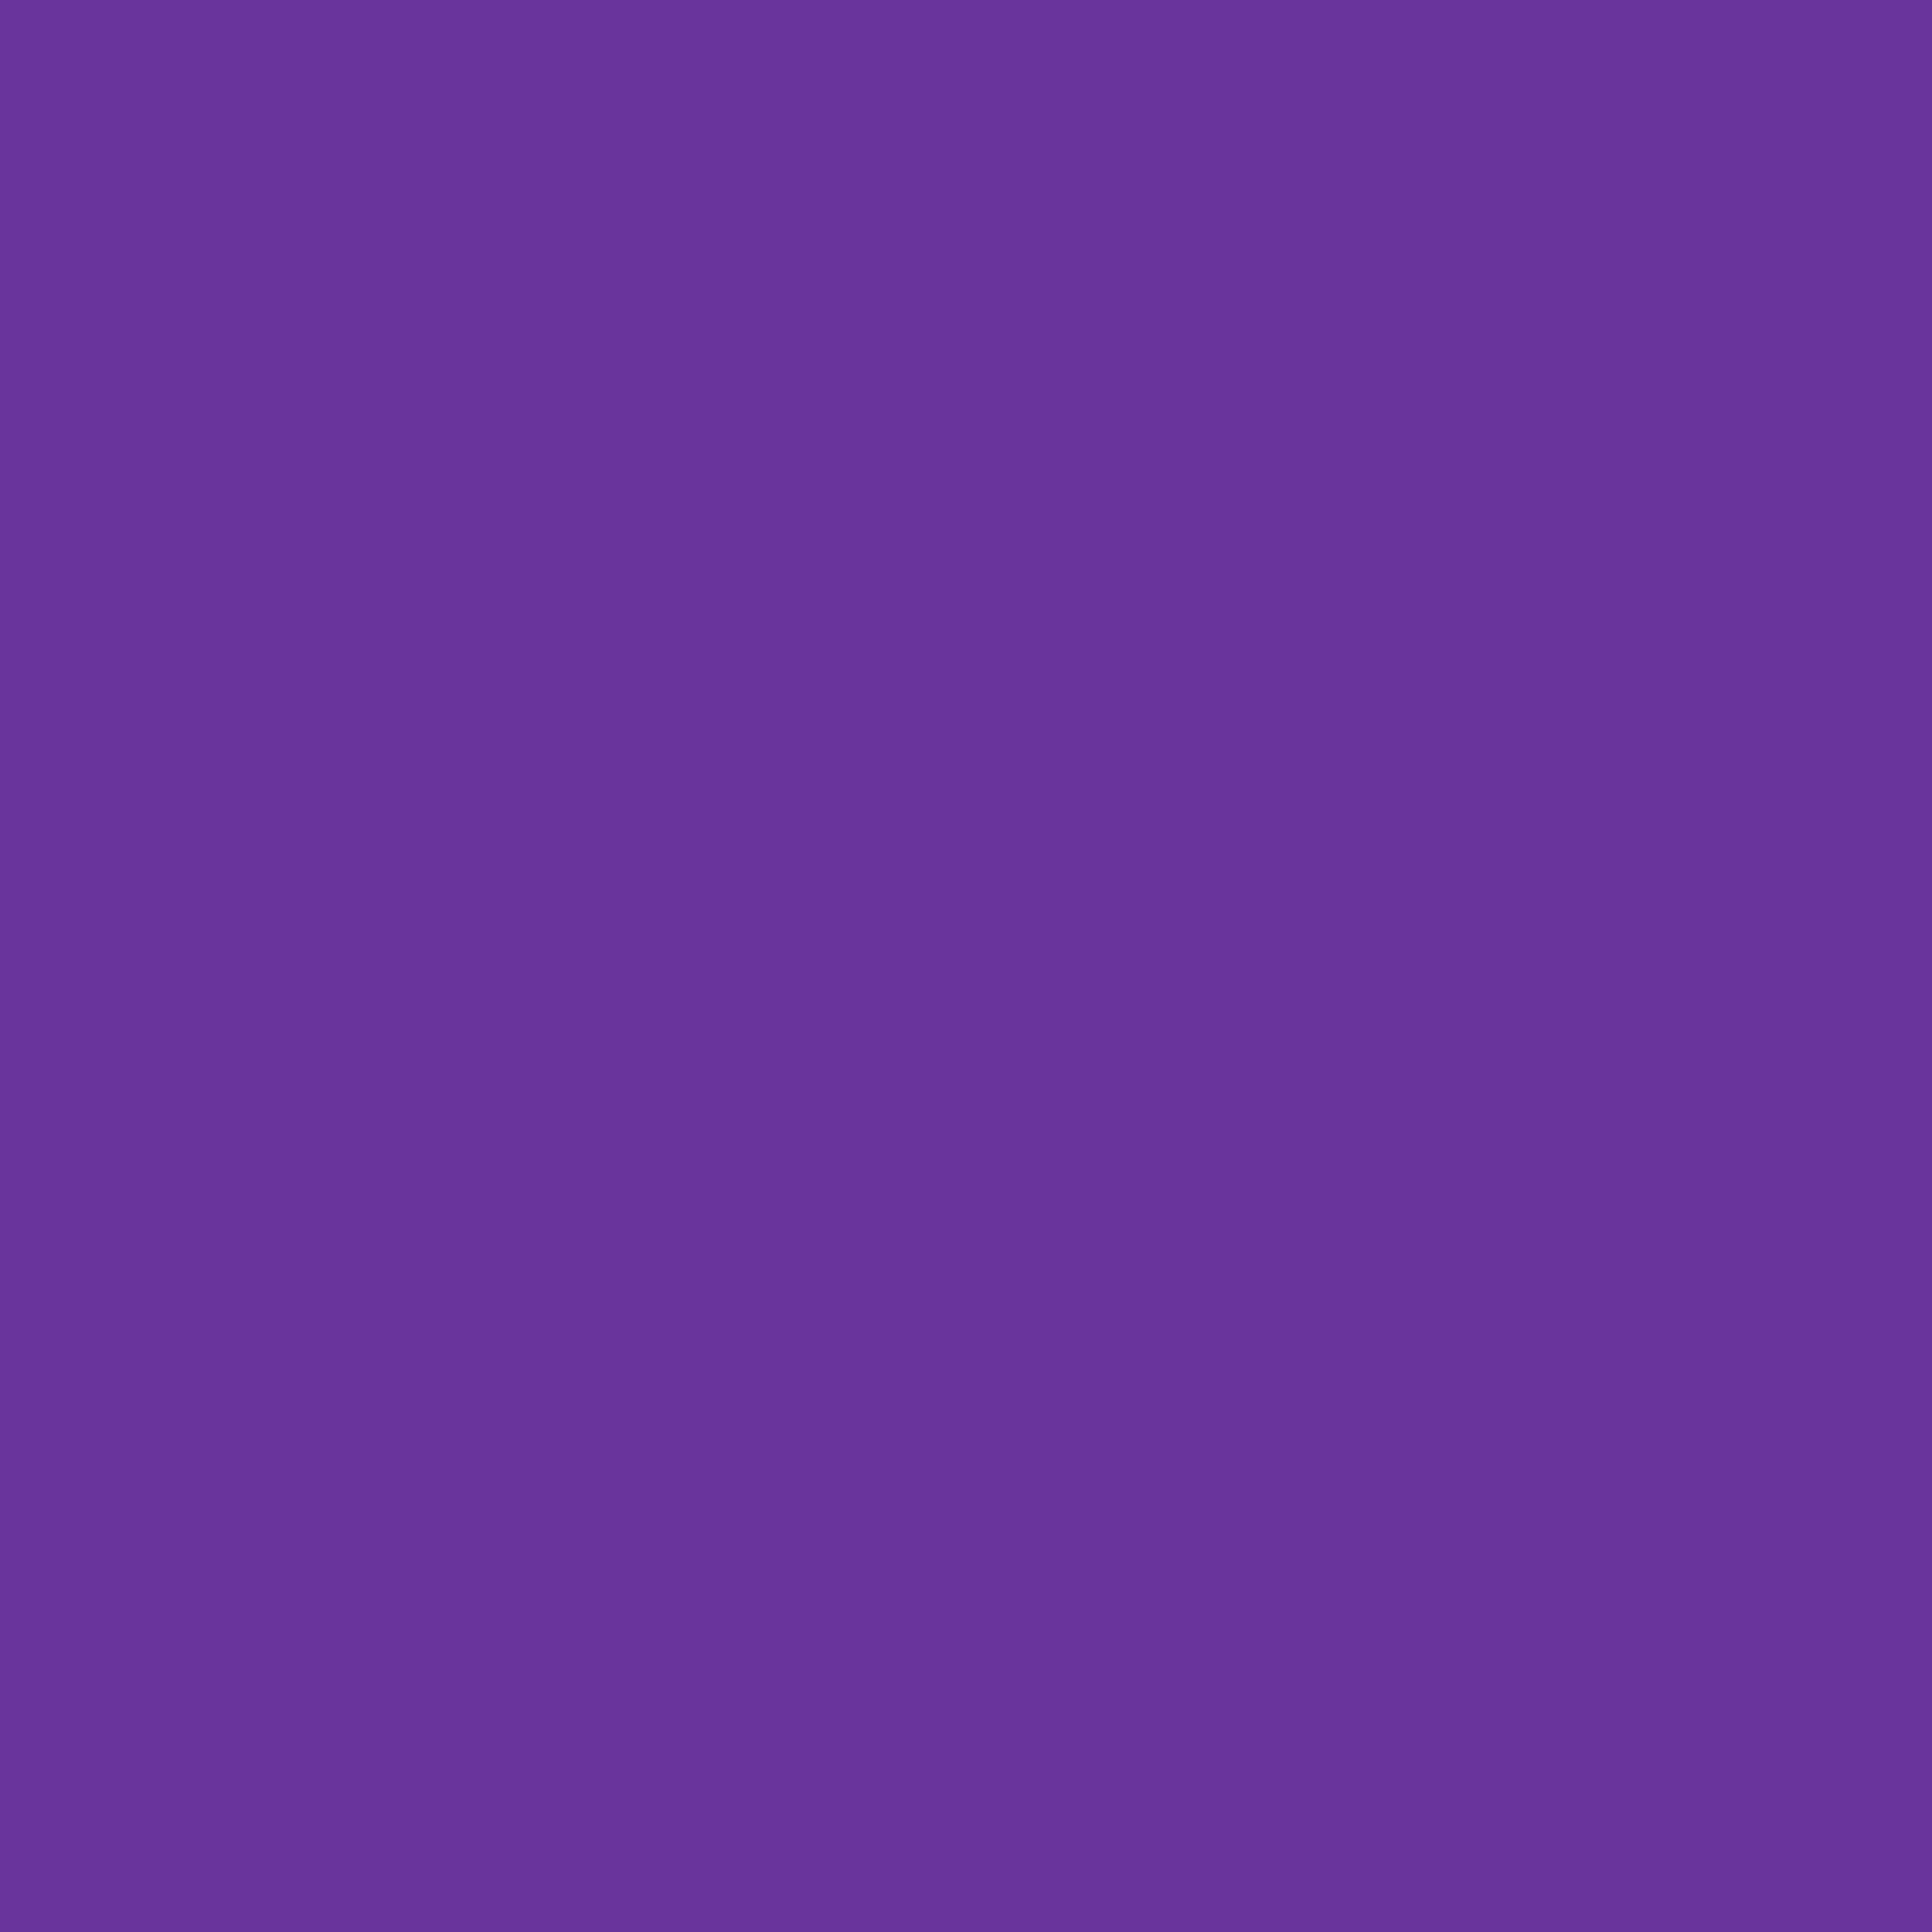 3600x3600 Purple Heart Solid Color Background